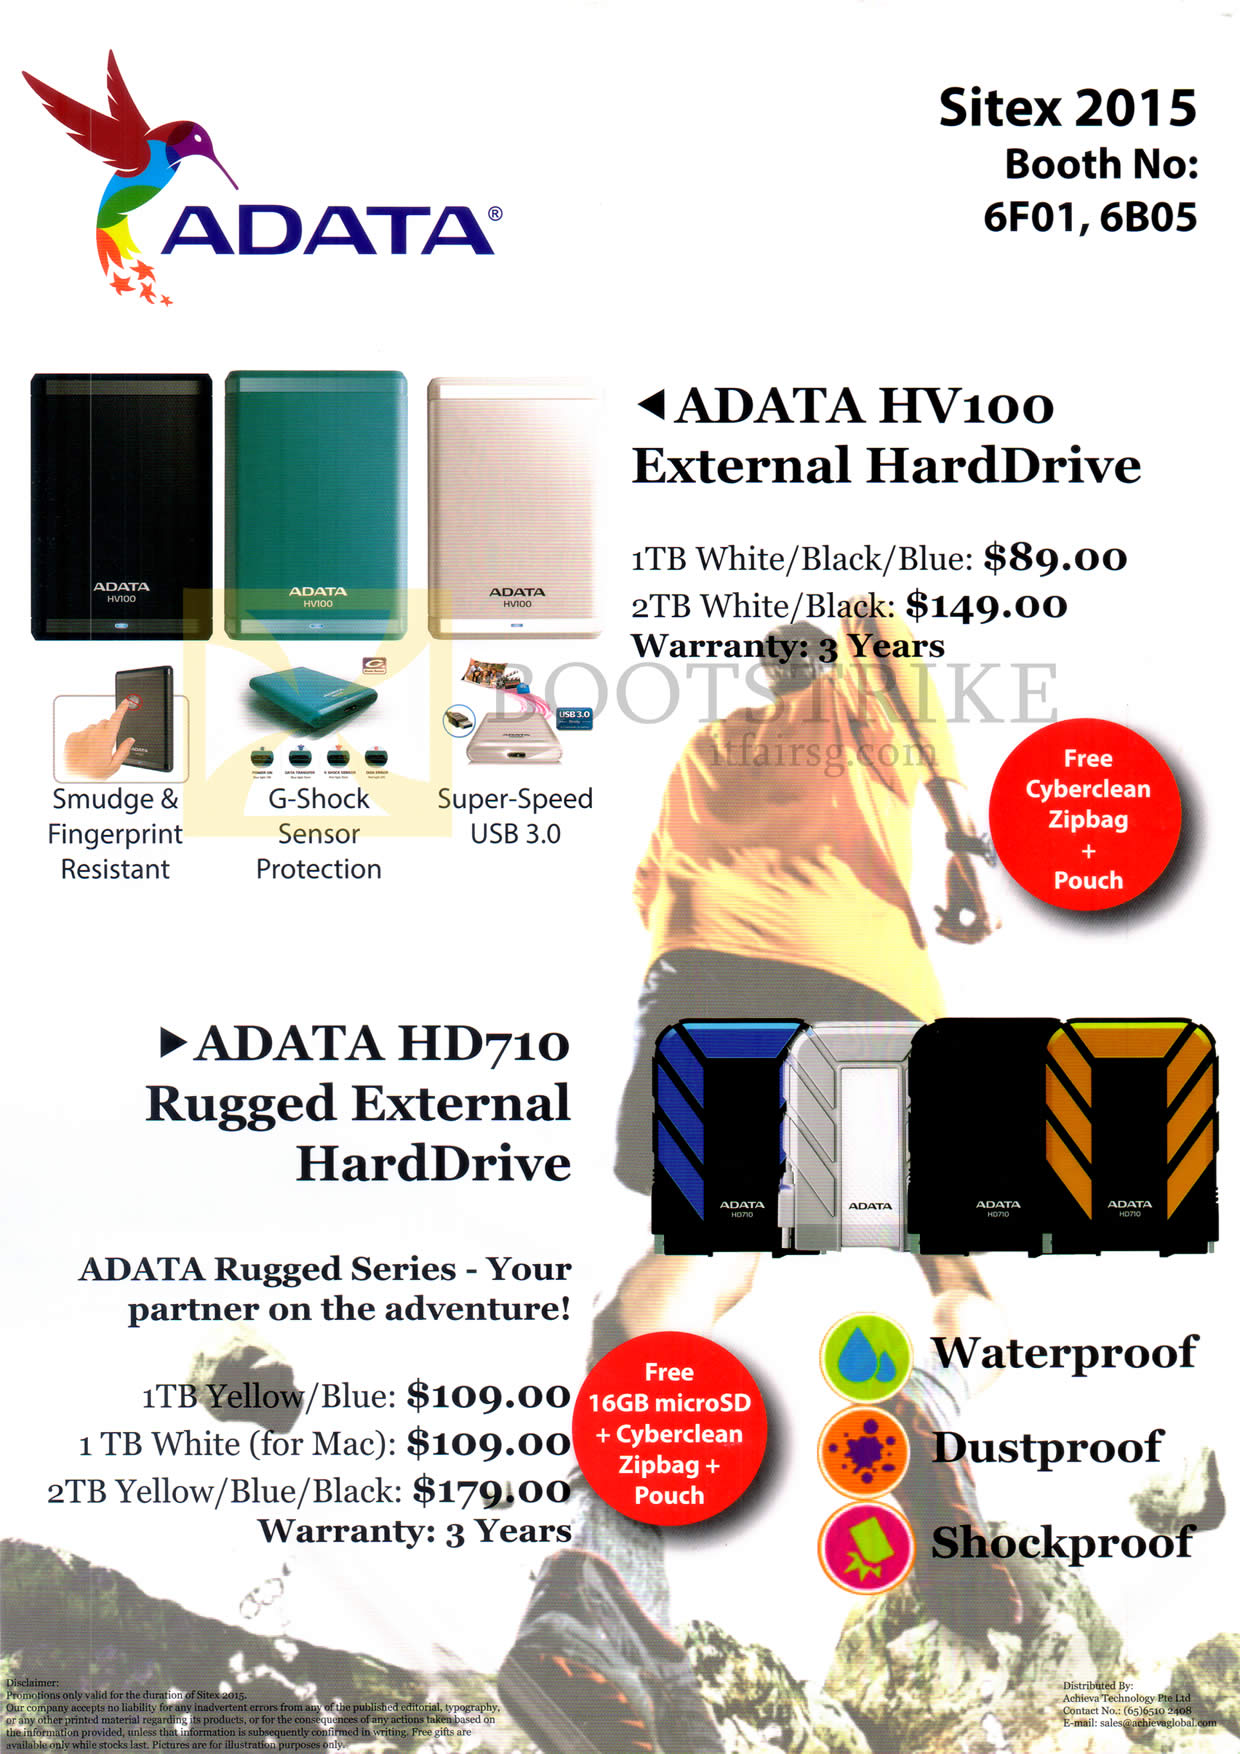 SITEX 2015 price list image brochure of Adata HV100, HD710 External Hard Drive